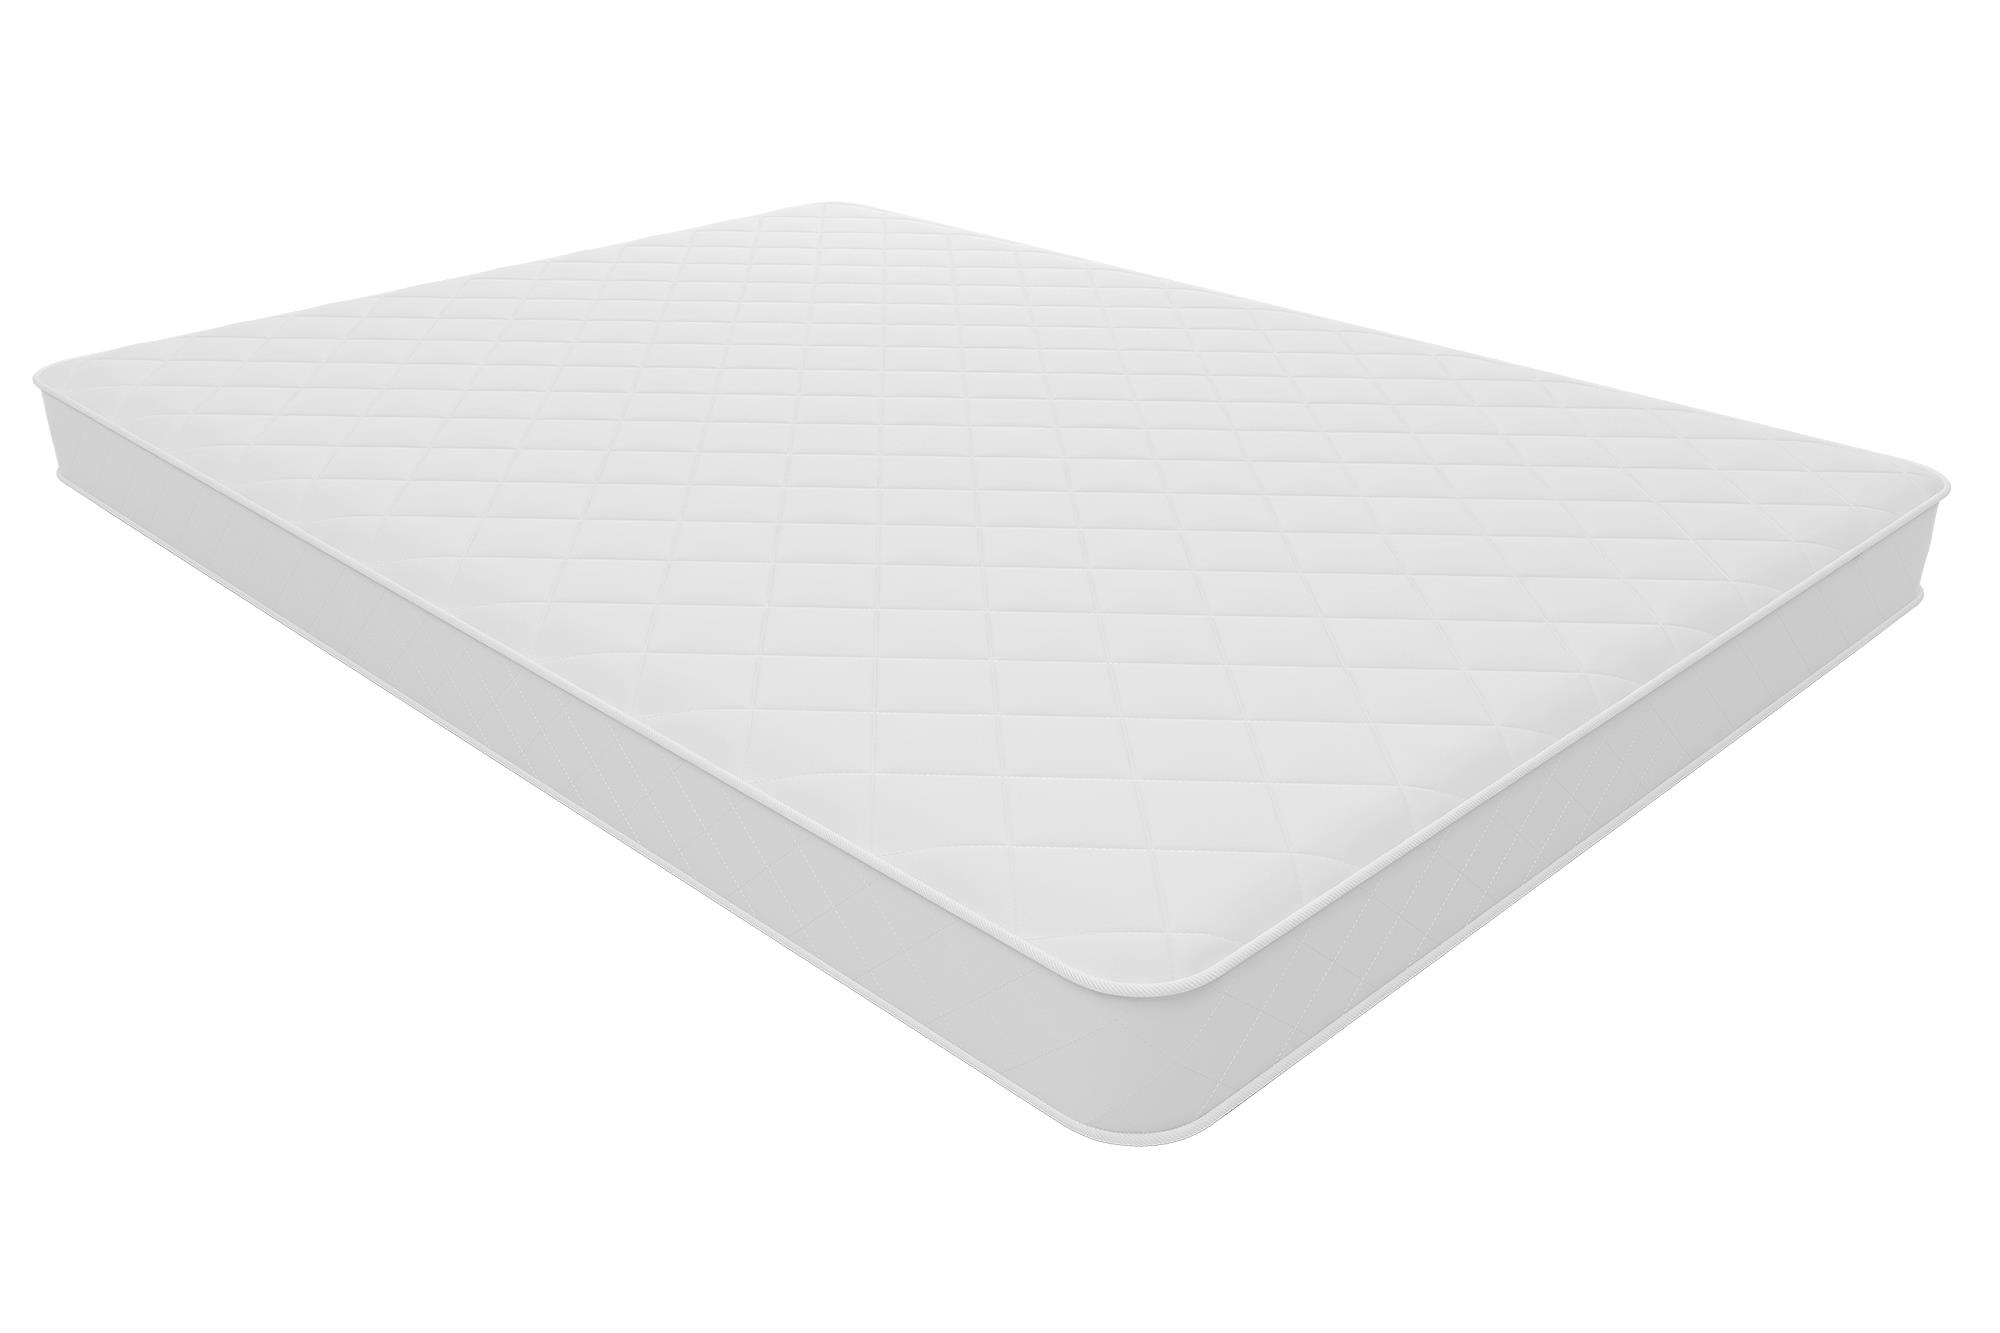 Signature Sleep Choice 6 Inch Coil Mattress - Walmart com